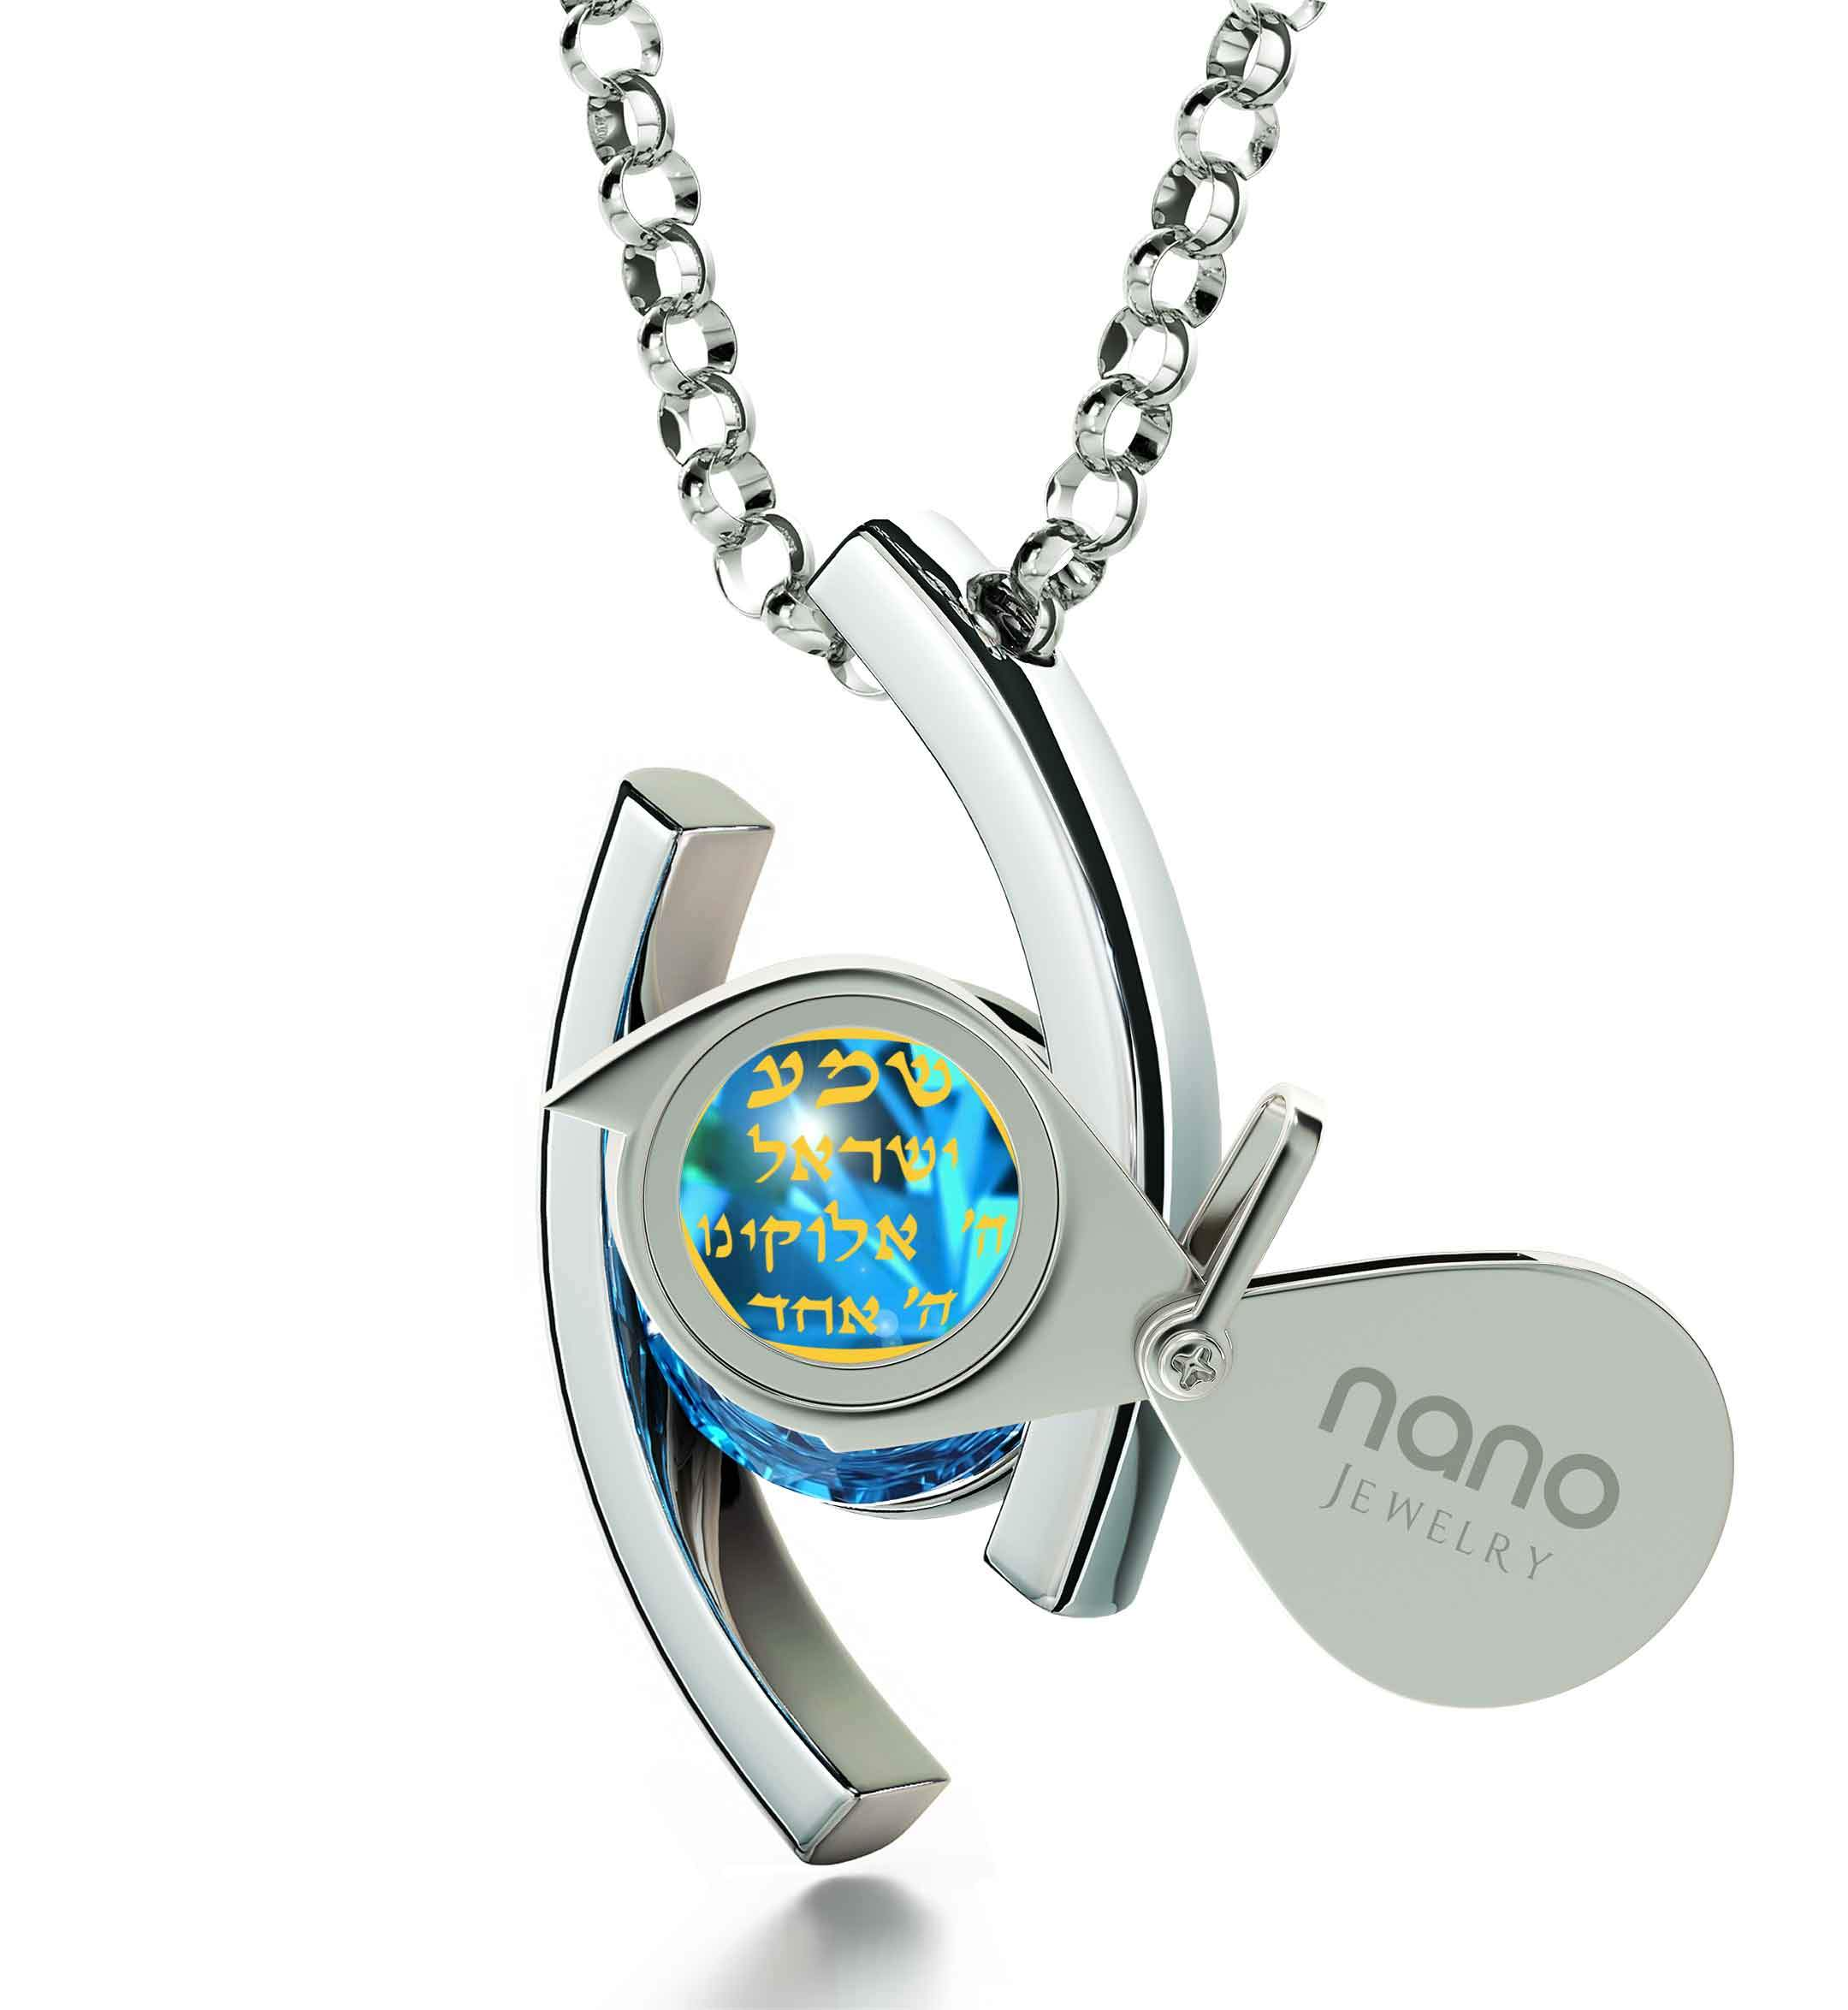 """Shema Yisrael"" Engraved in 24k, Jewish Necklace with Blue Topaz Stone, Israeli Jewelry Designer, Nano Jewelry"